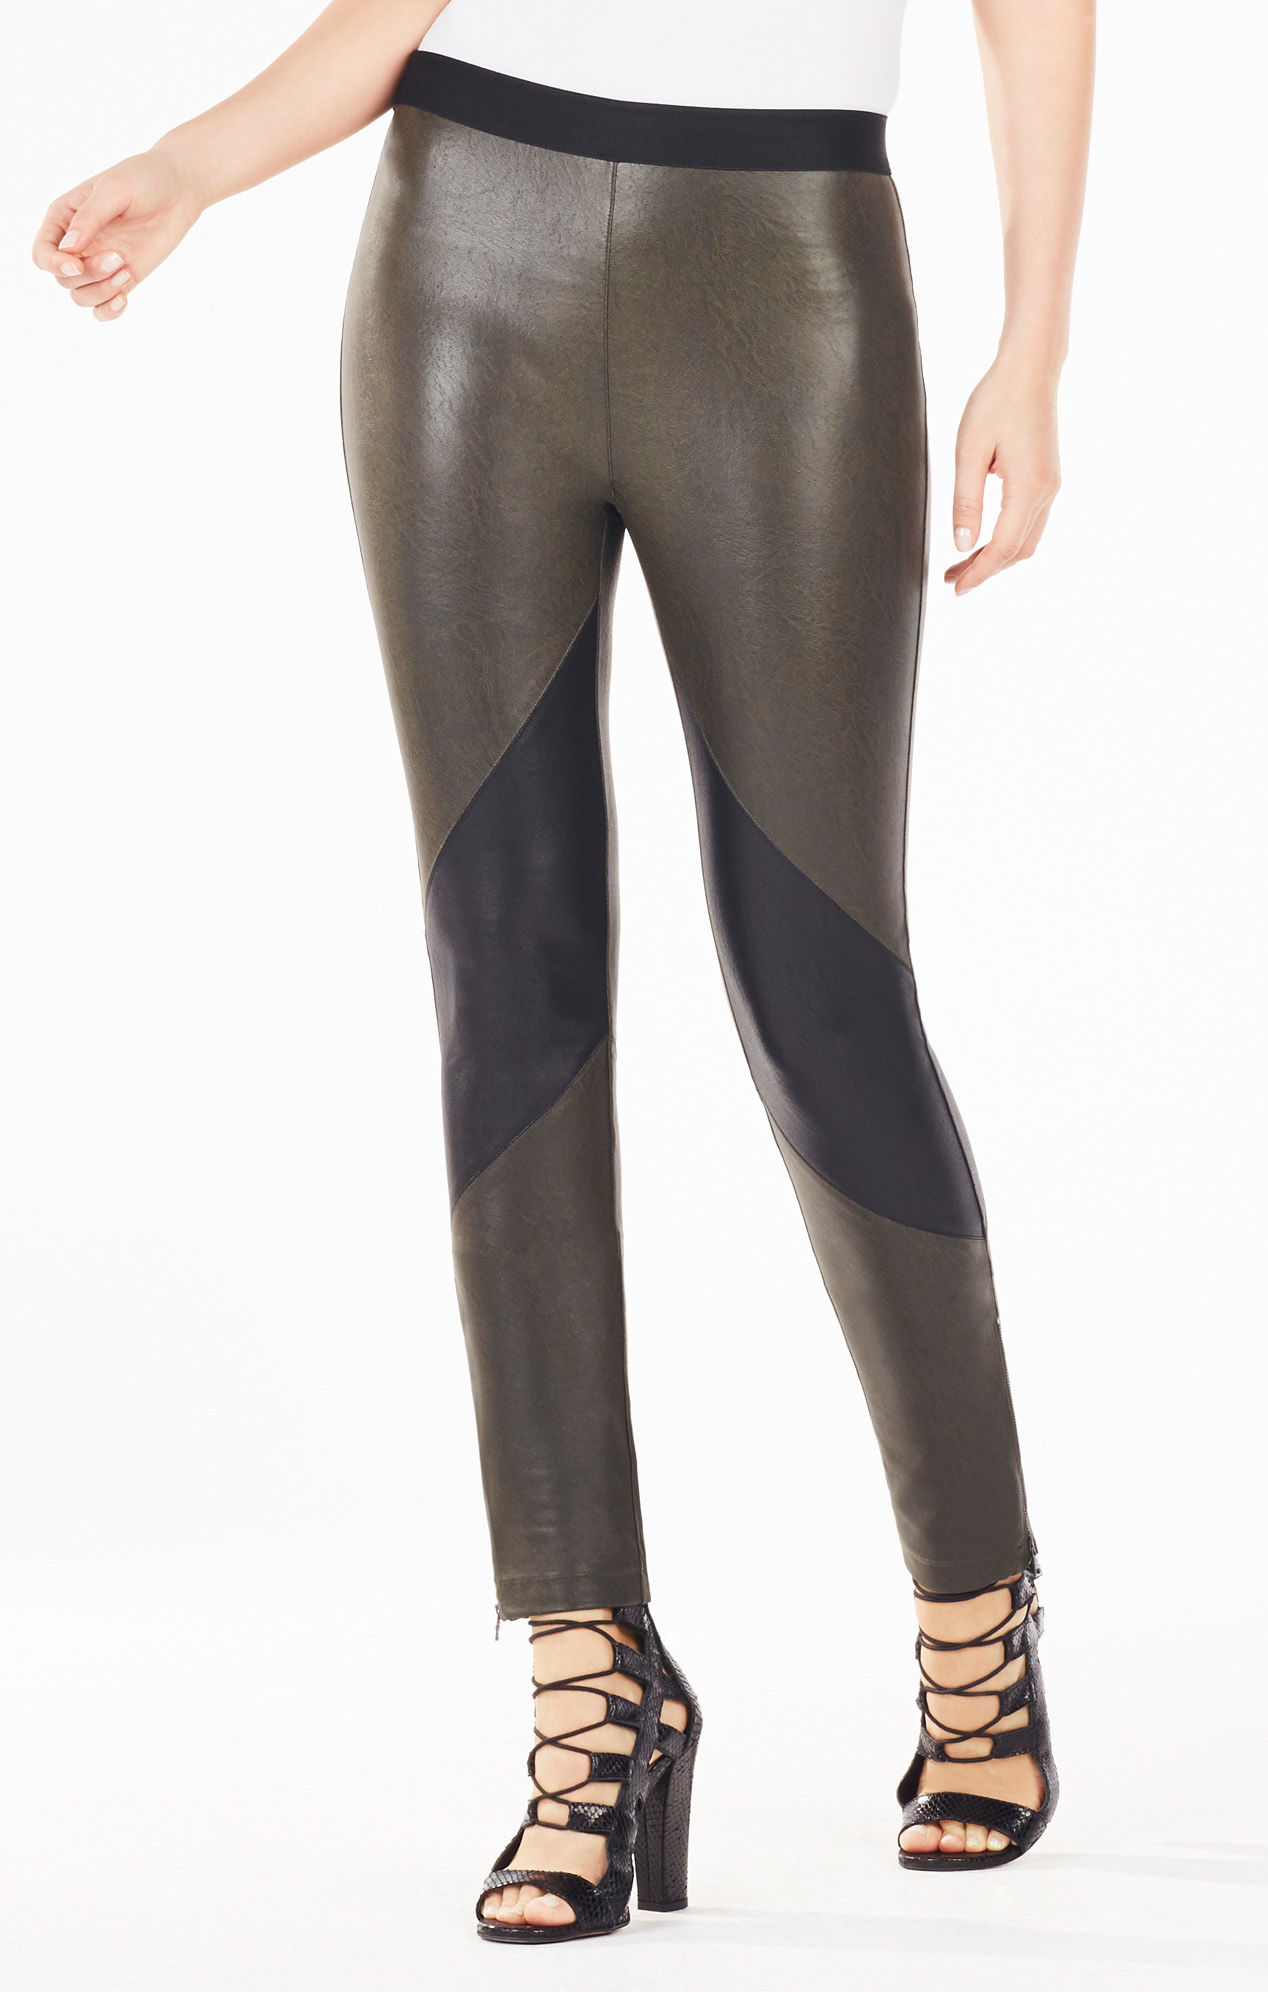 11a006ff19118c Gallery. Previously sold at: BCBGMAXAZRIA · Women's Faux Leather Pants  Women's Leather Leggings